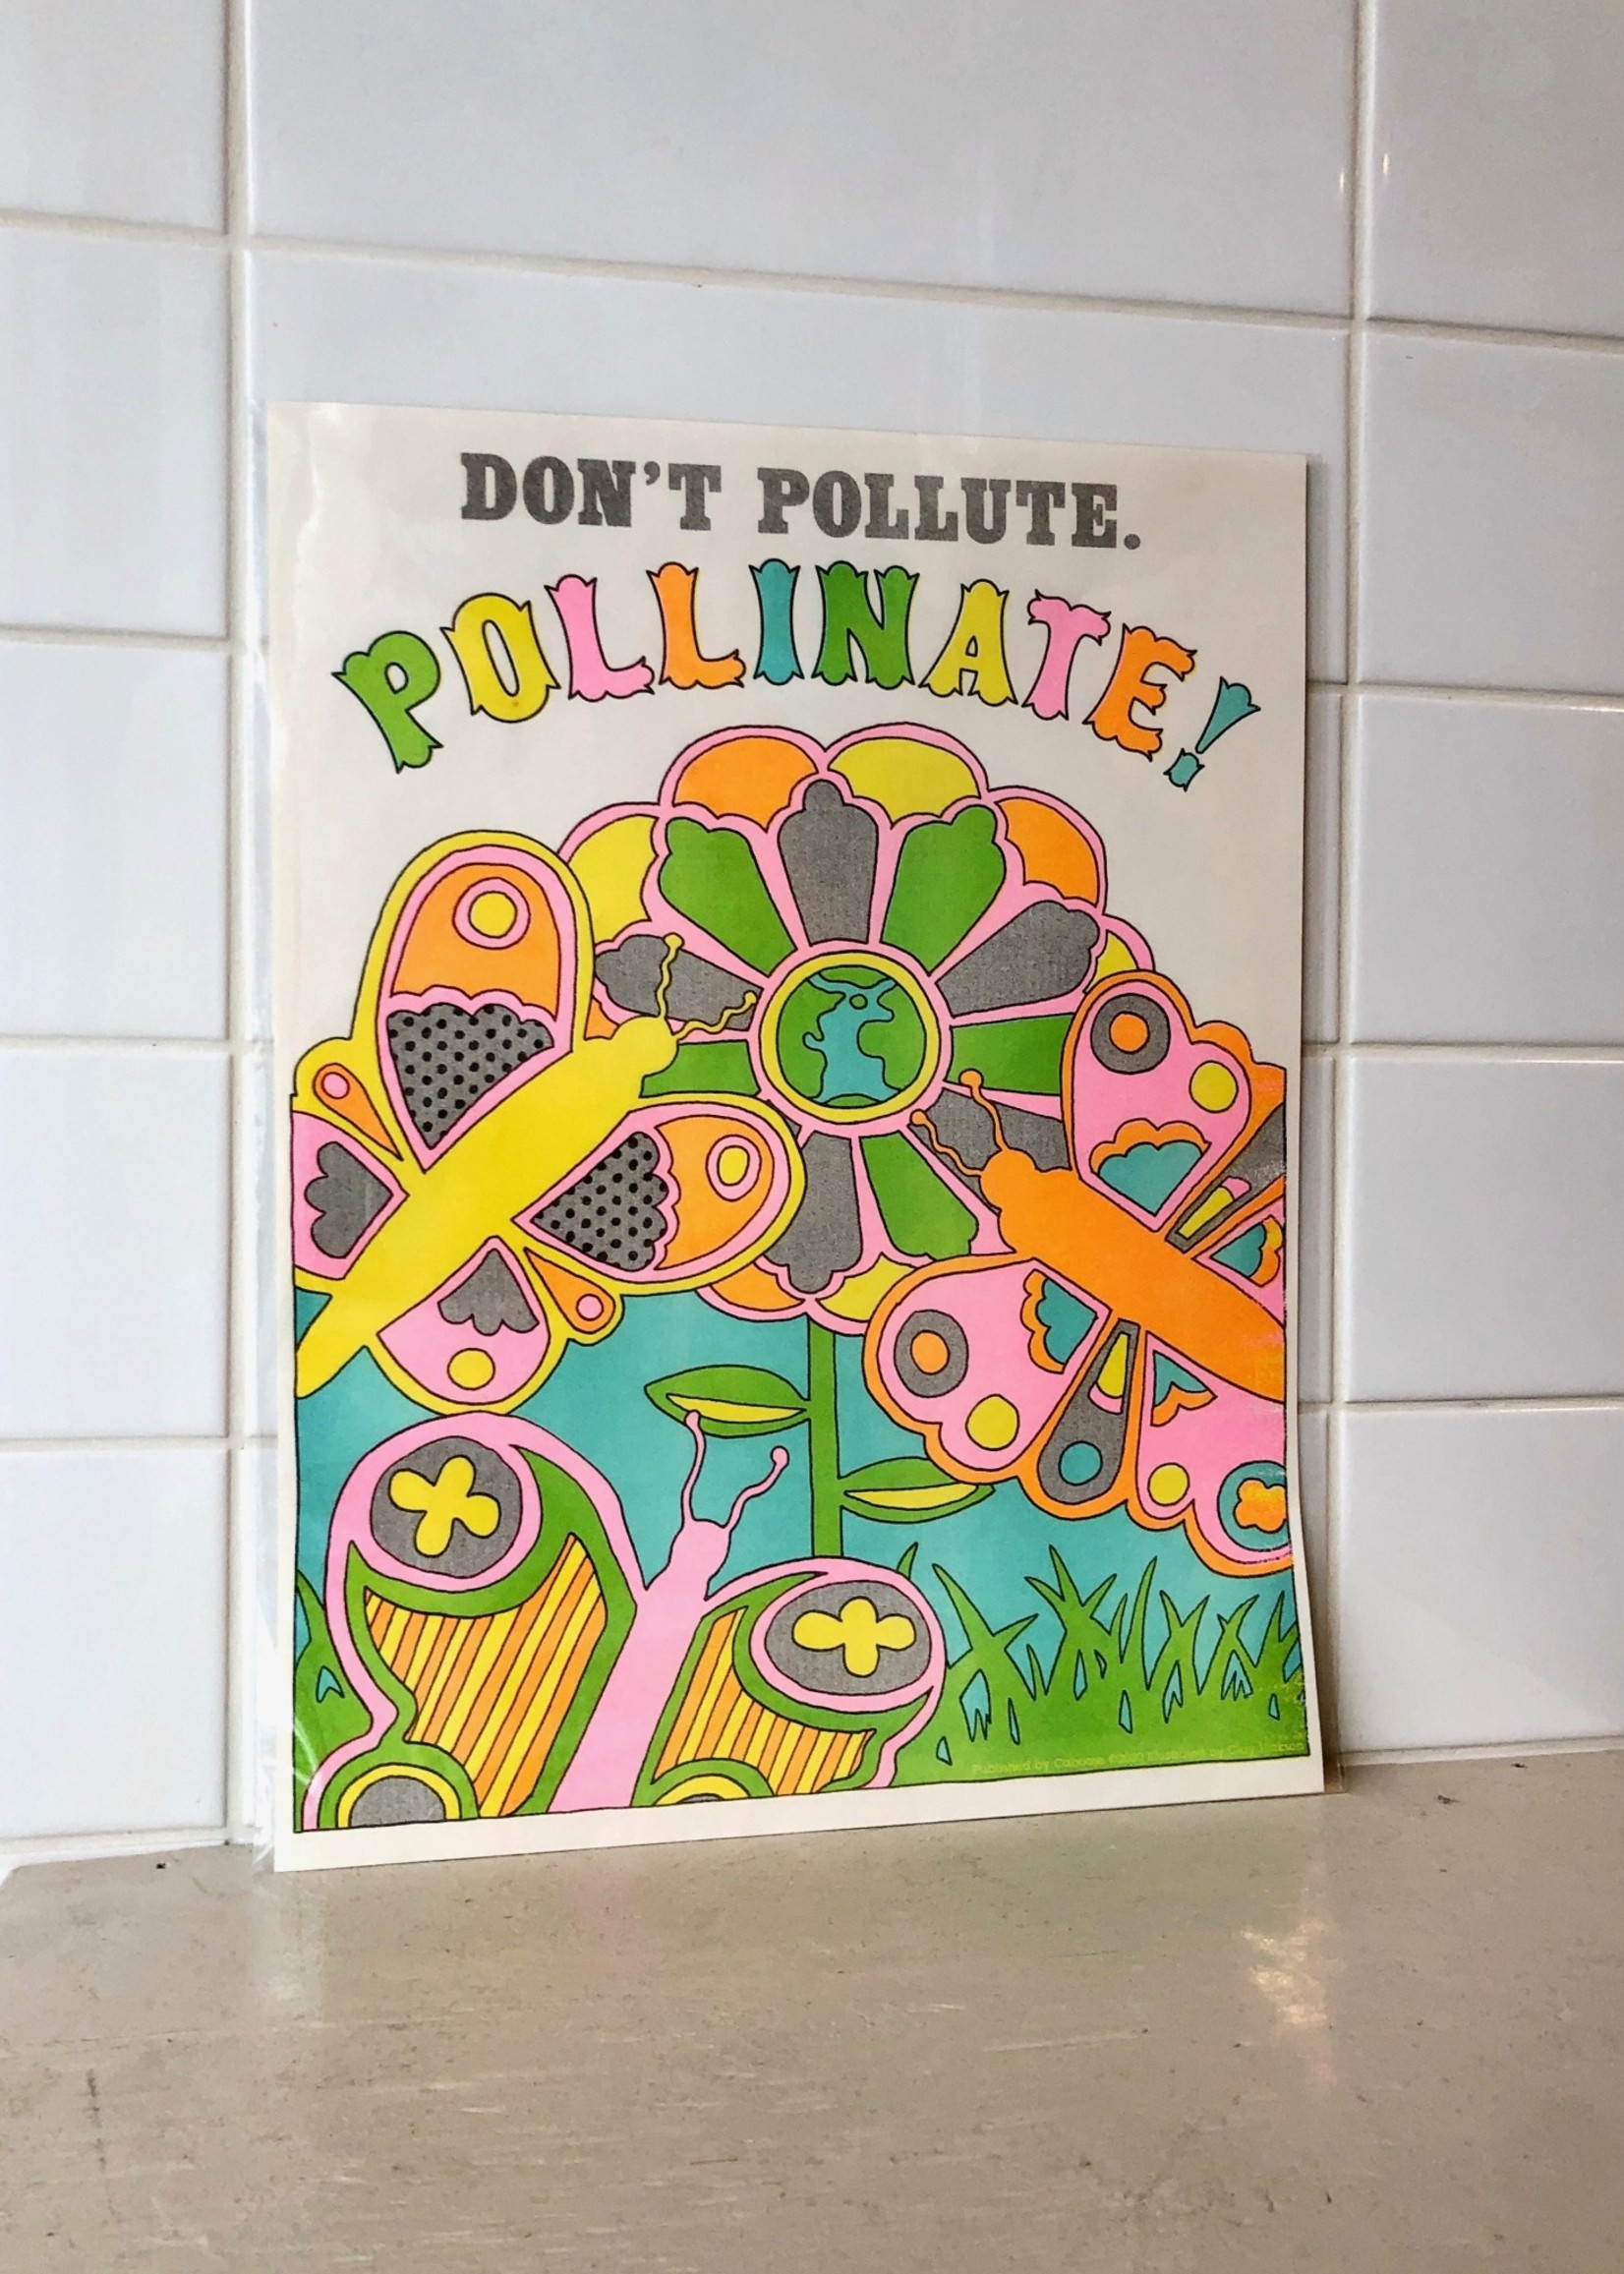 Caboose Pollinate! Print by Caboose